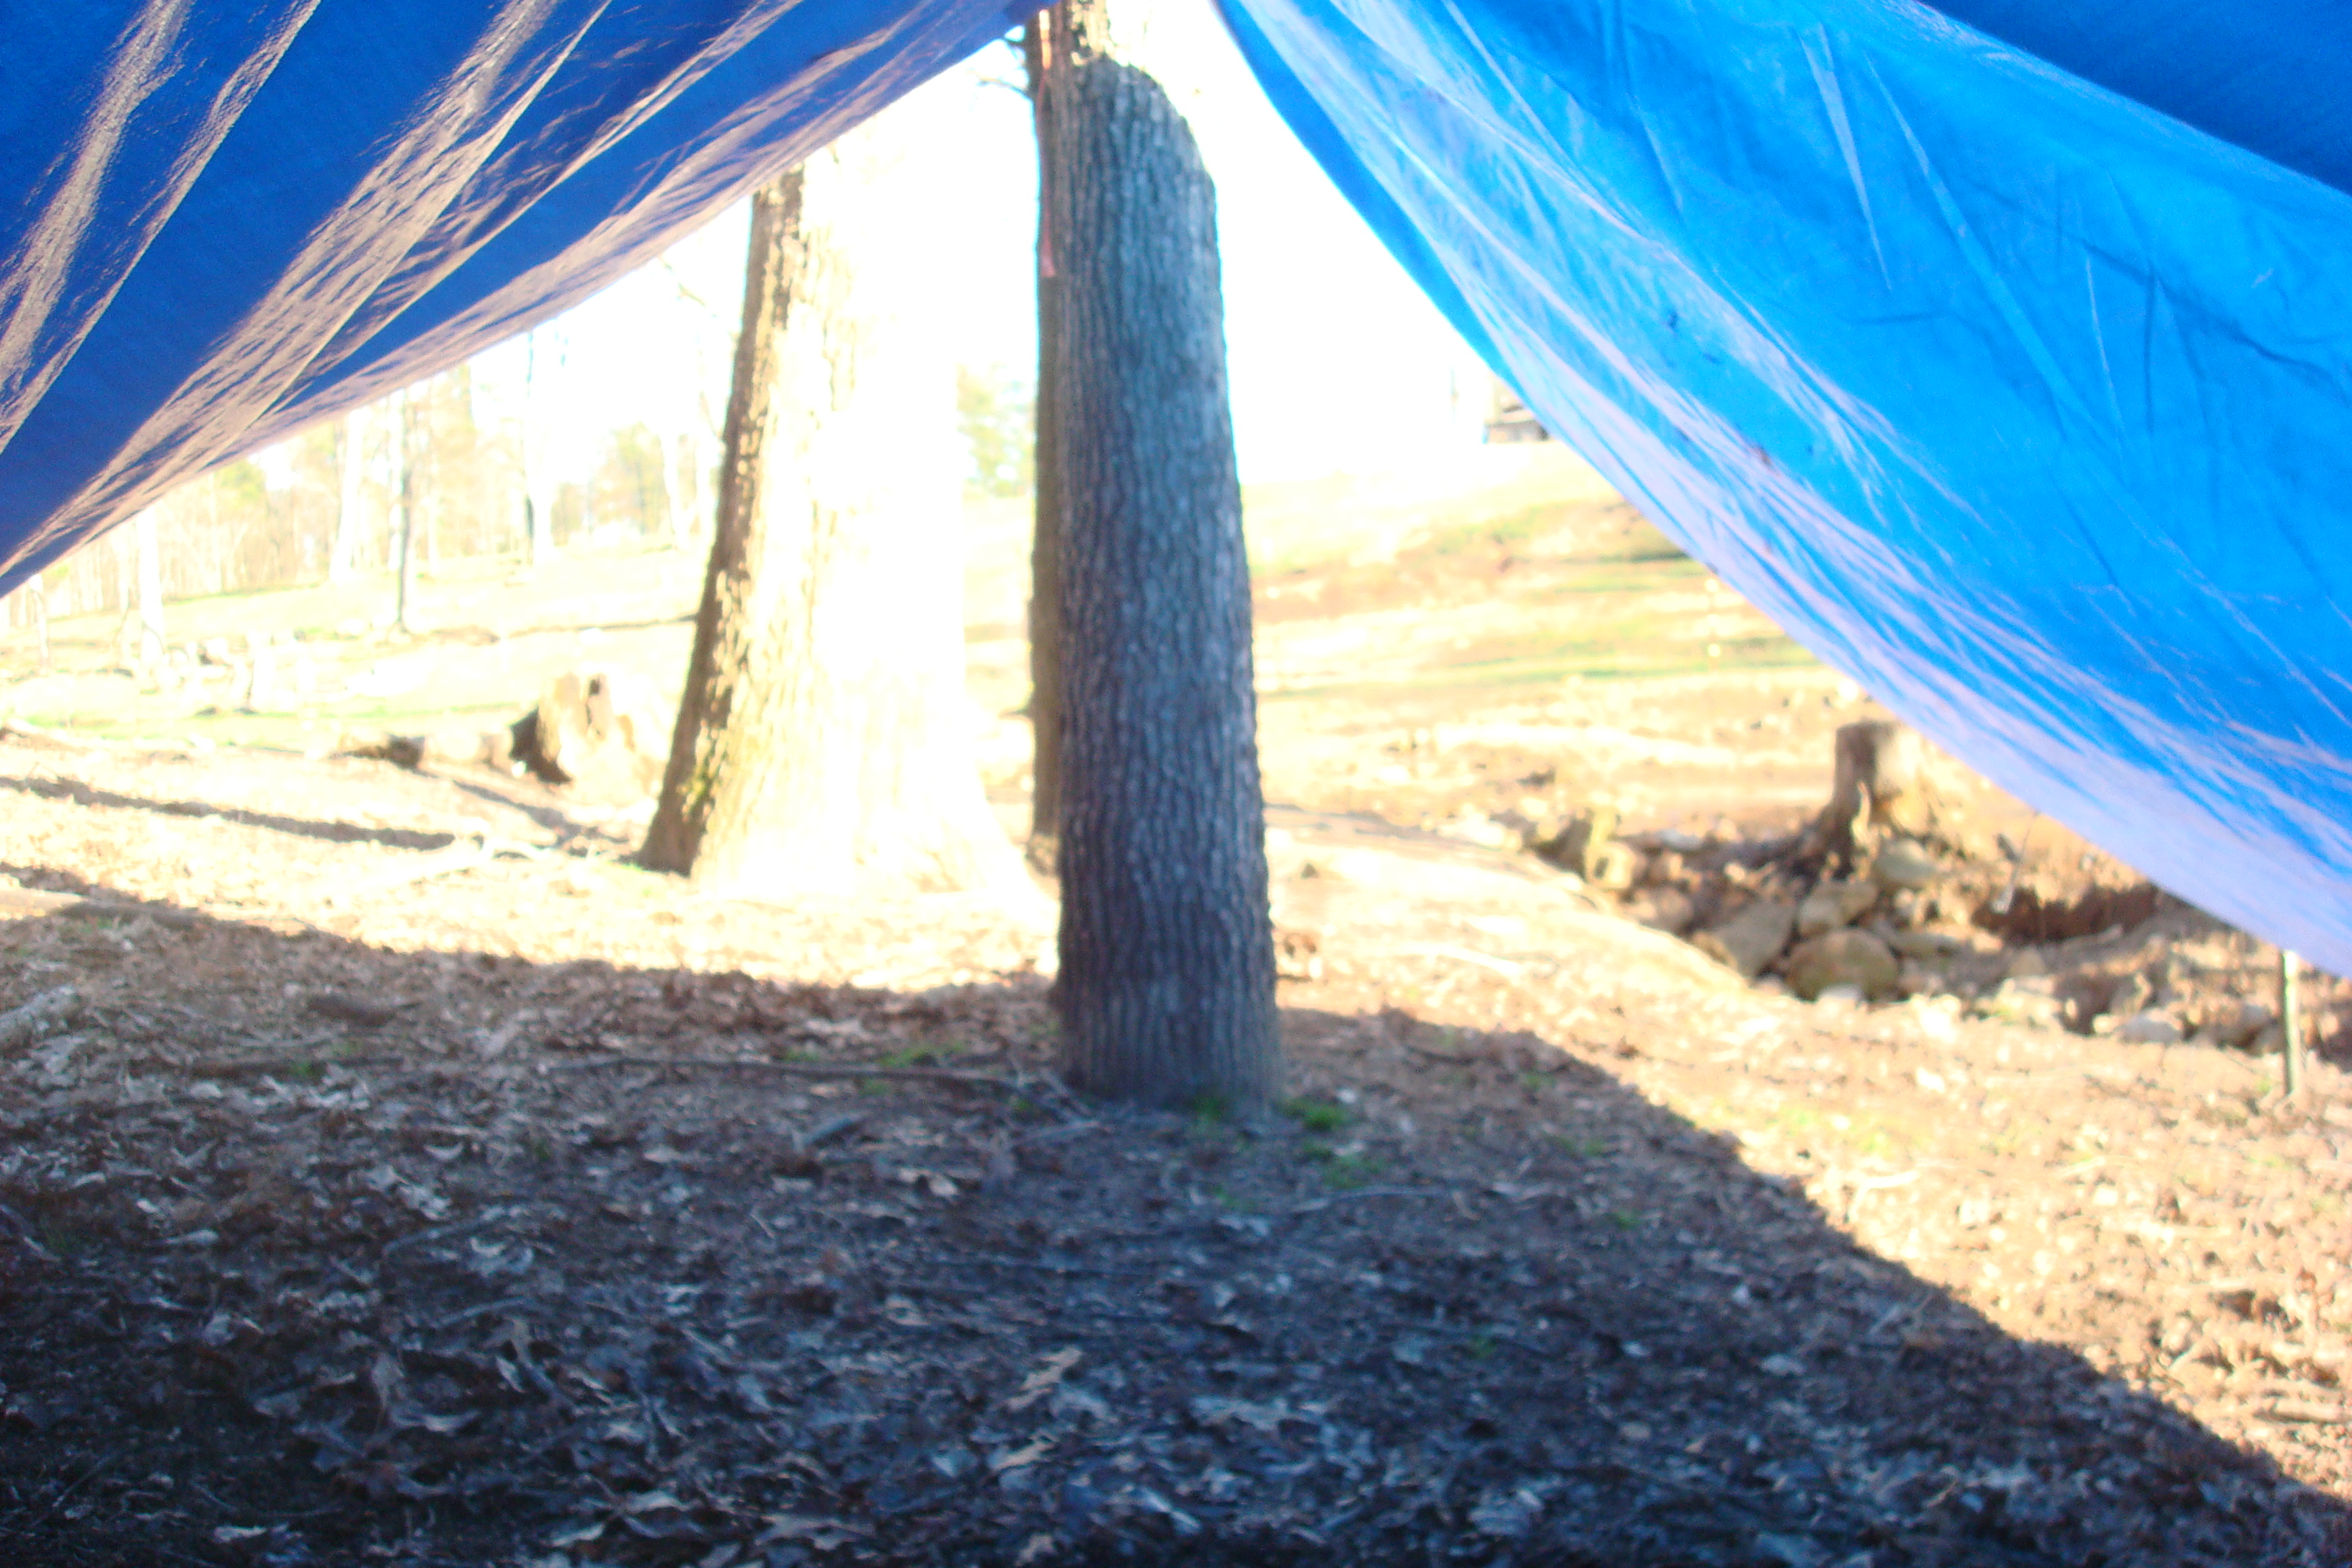 Picture of Paracord Tent Or, Hobos Tent